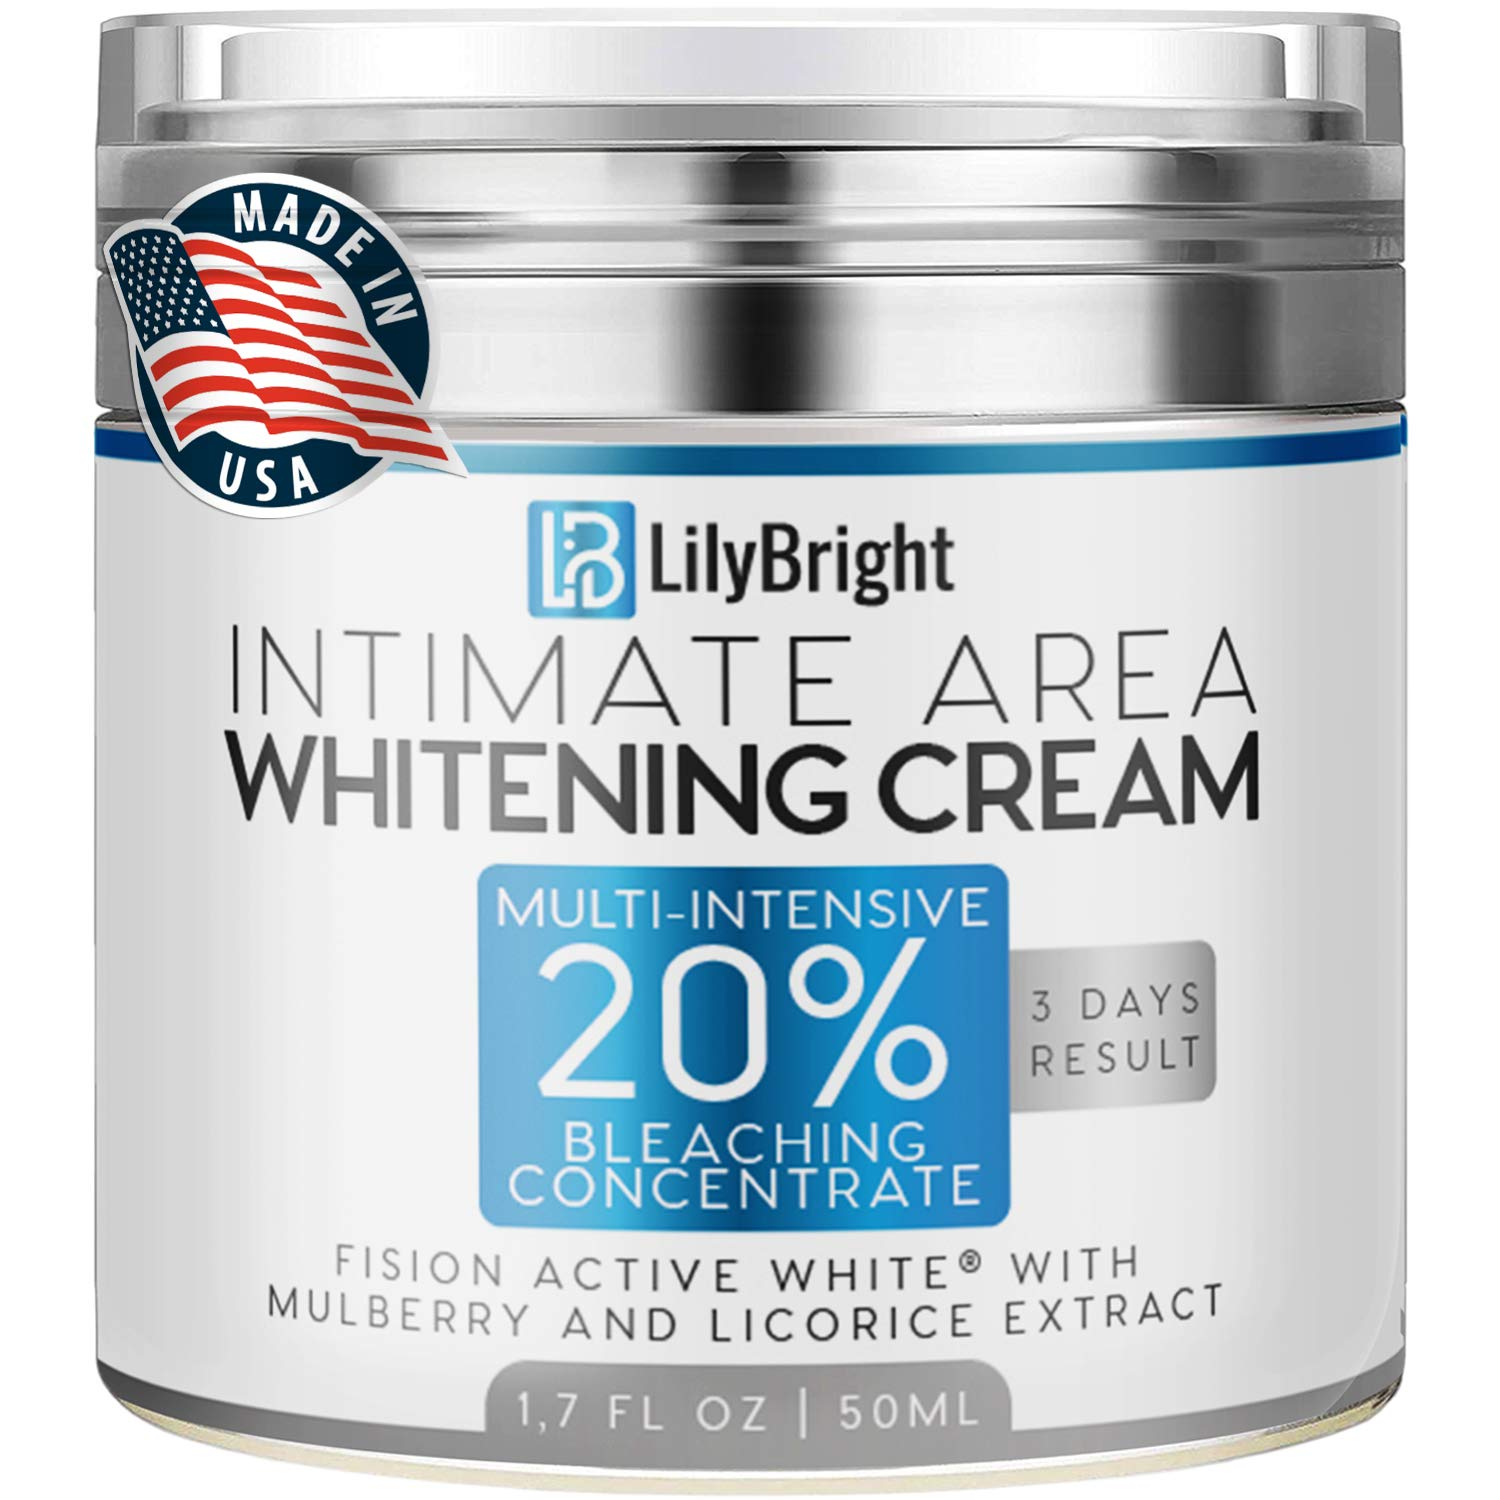 Whitening Cream With Alpha Arbutin - Made in USA - Dark Spot Corrector For Face And Sensitive Skin - Provides Effective Bleaching for Private Parts, Sun Spots, Age Spots & Melasma Treatment - 50 ML by LilyBright